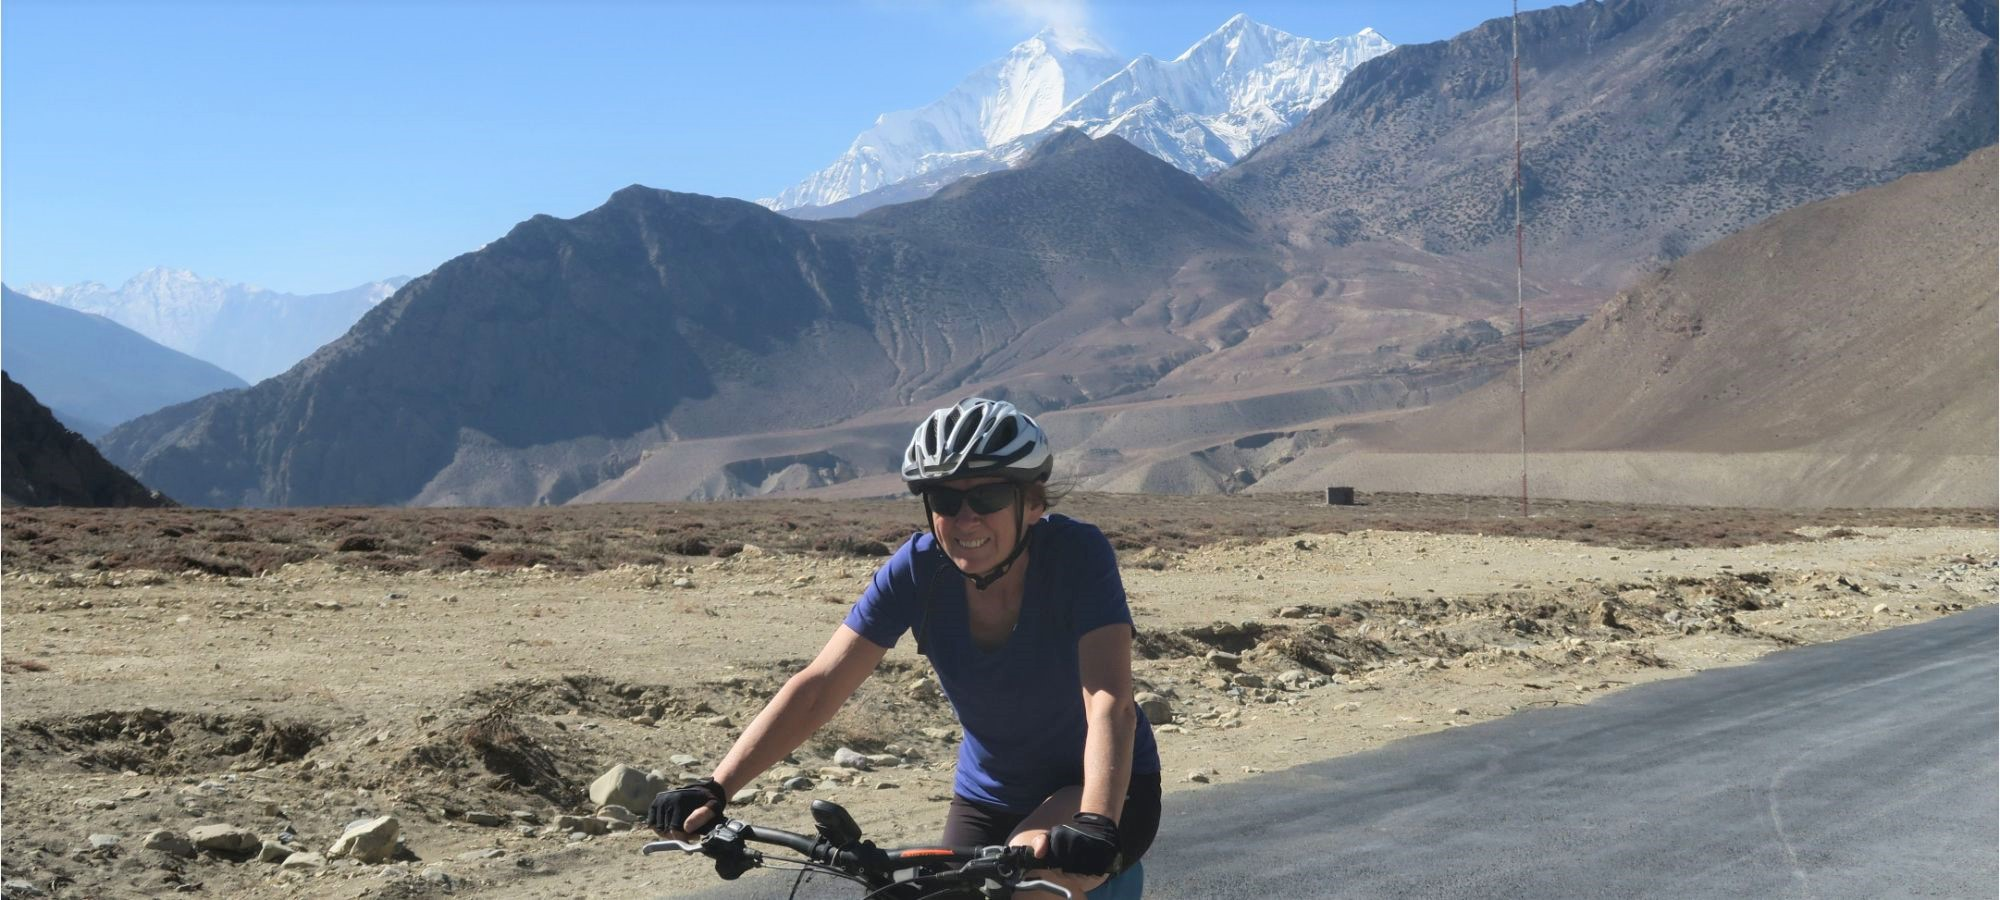 Photos from our Nepal Cycling Holiday